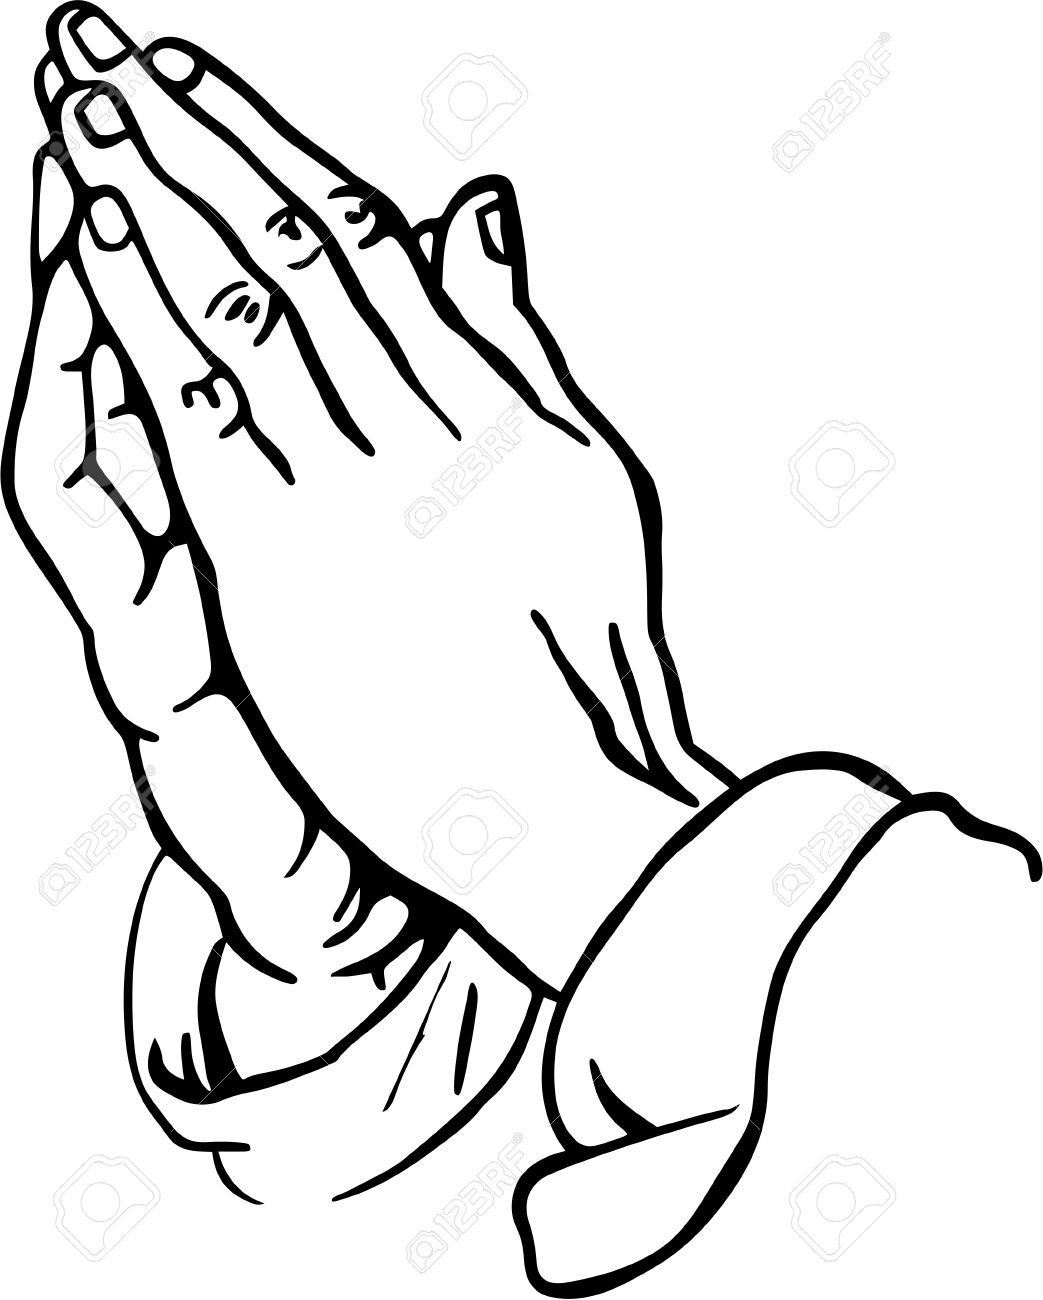 1043x1300 Praying Hands Free Clipart